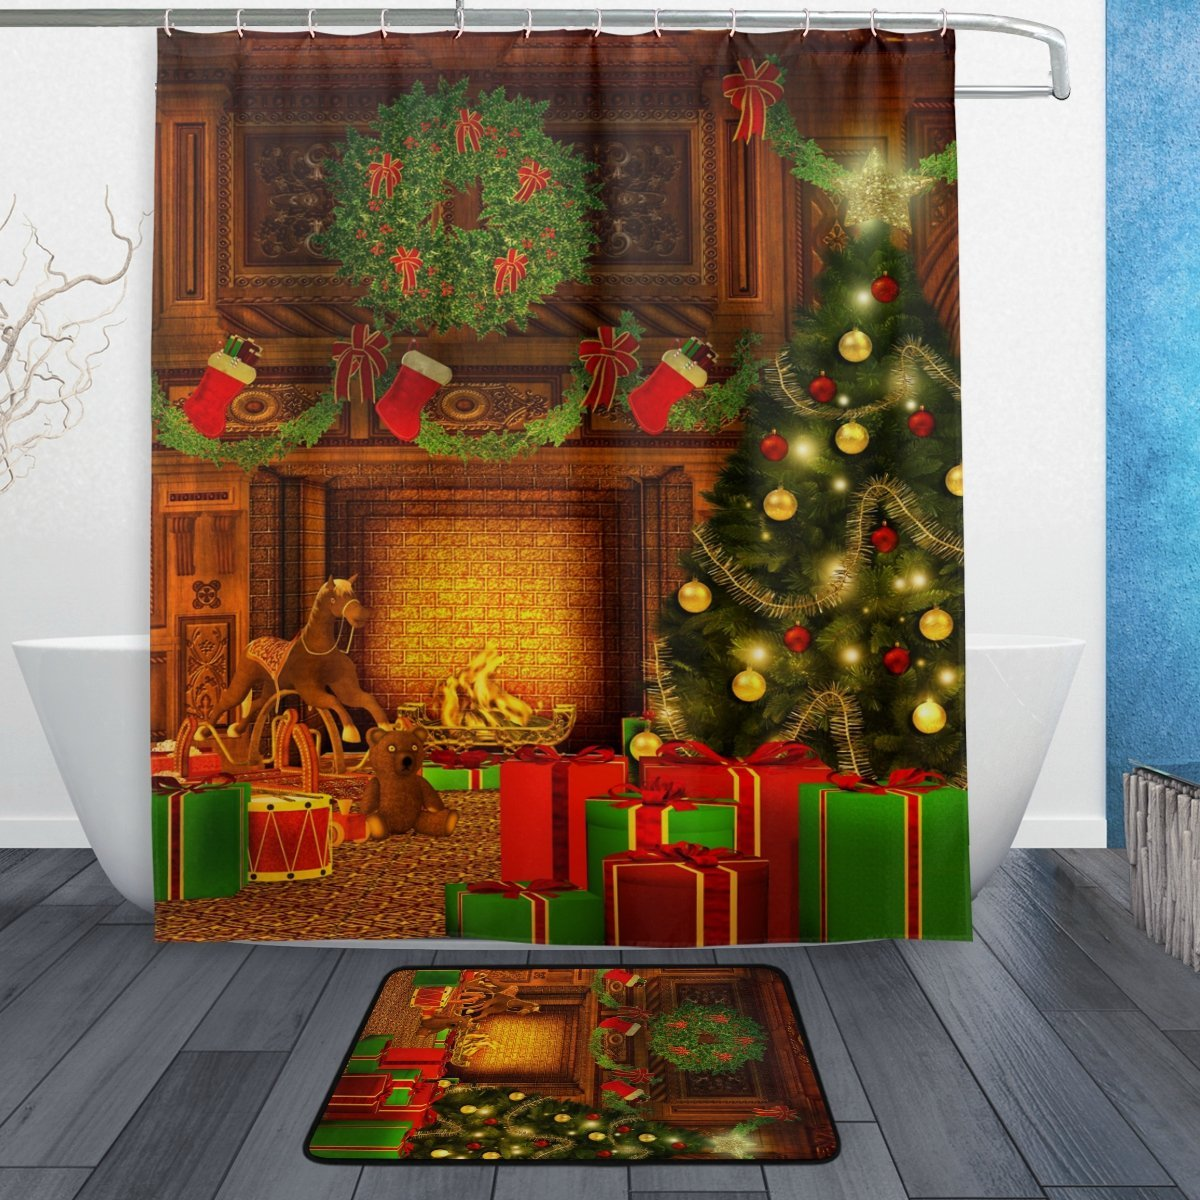 Christmas Tree Shower Curtain and Mat Set, Vintage Retro Room Happy New Year Waterproof Fabric Bathroom Curtain Modern